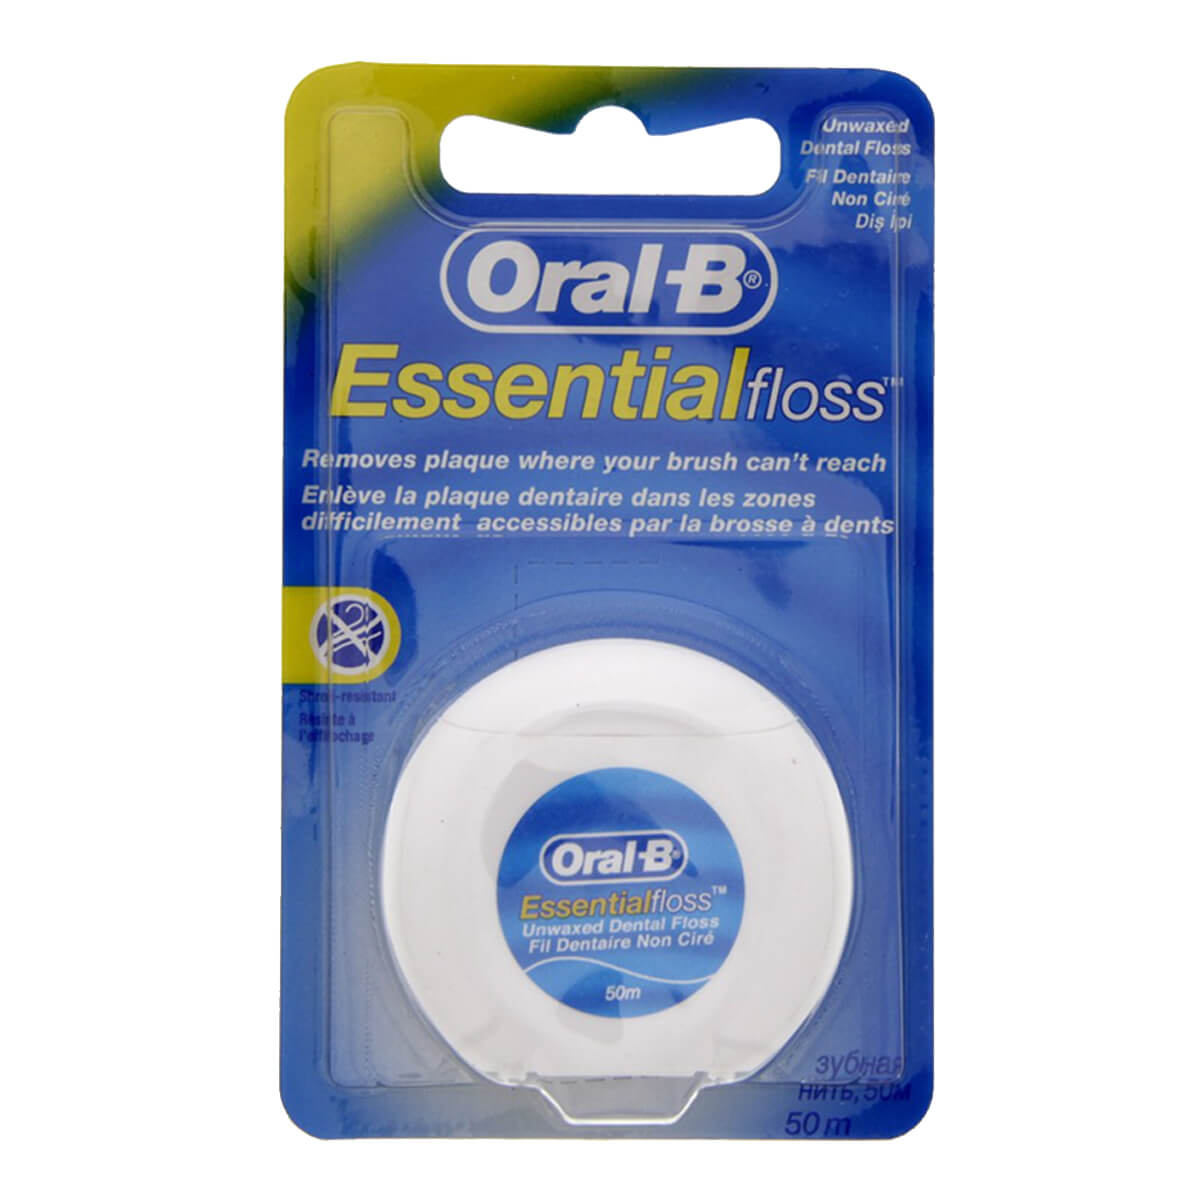 Oral-B Essential dental floss waxed, unflavoured